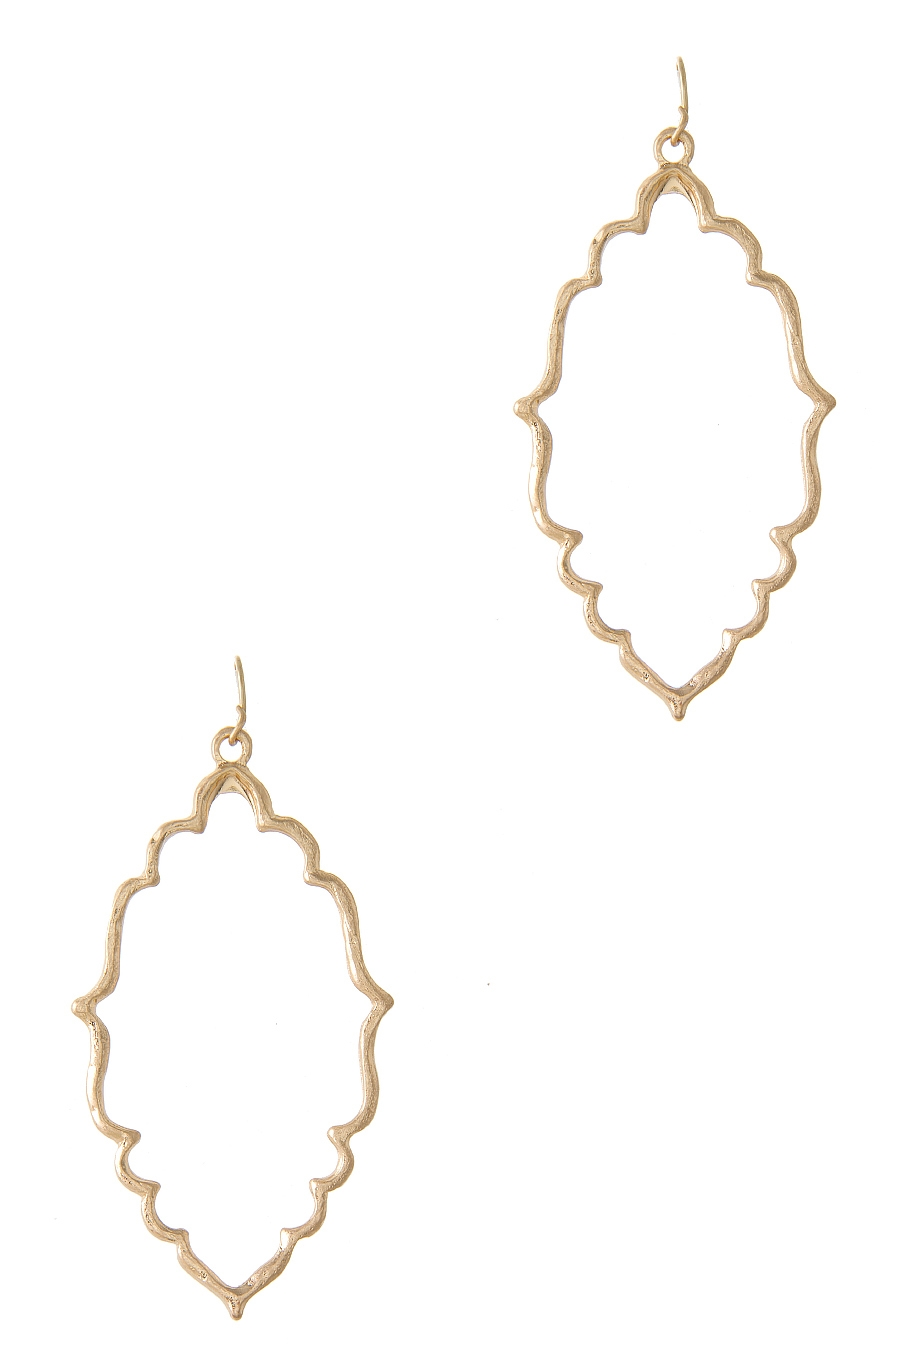 FILIGREE SHAPE HOOK EARRING - orangeshine.com